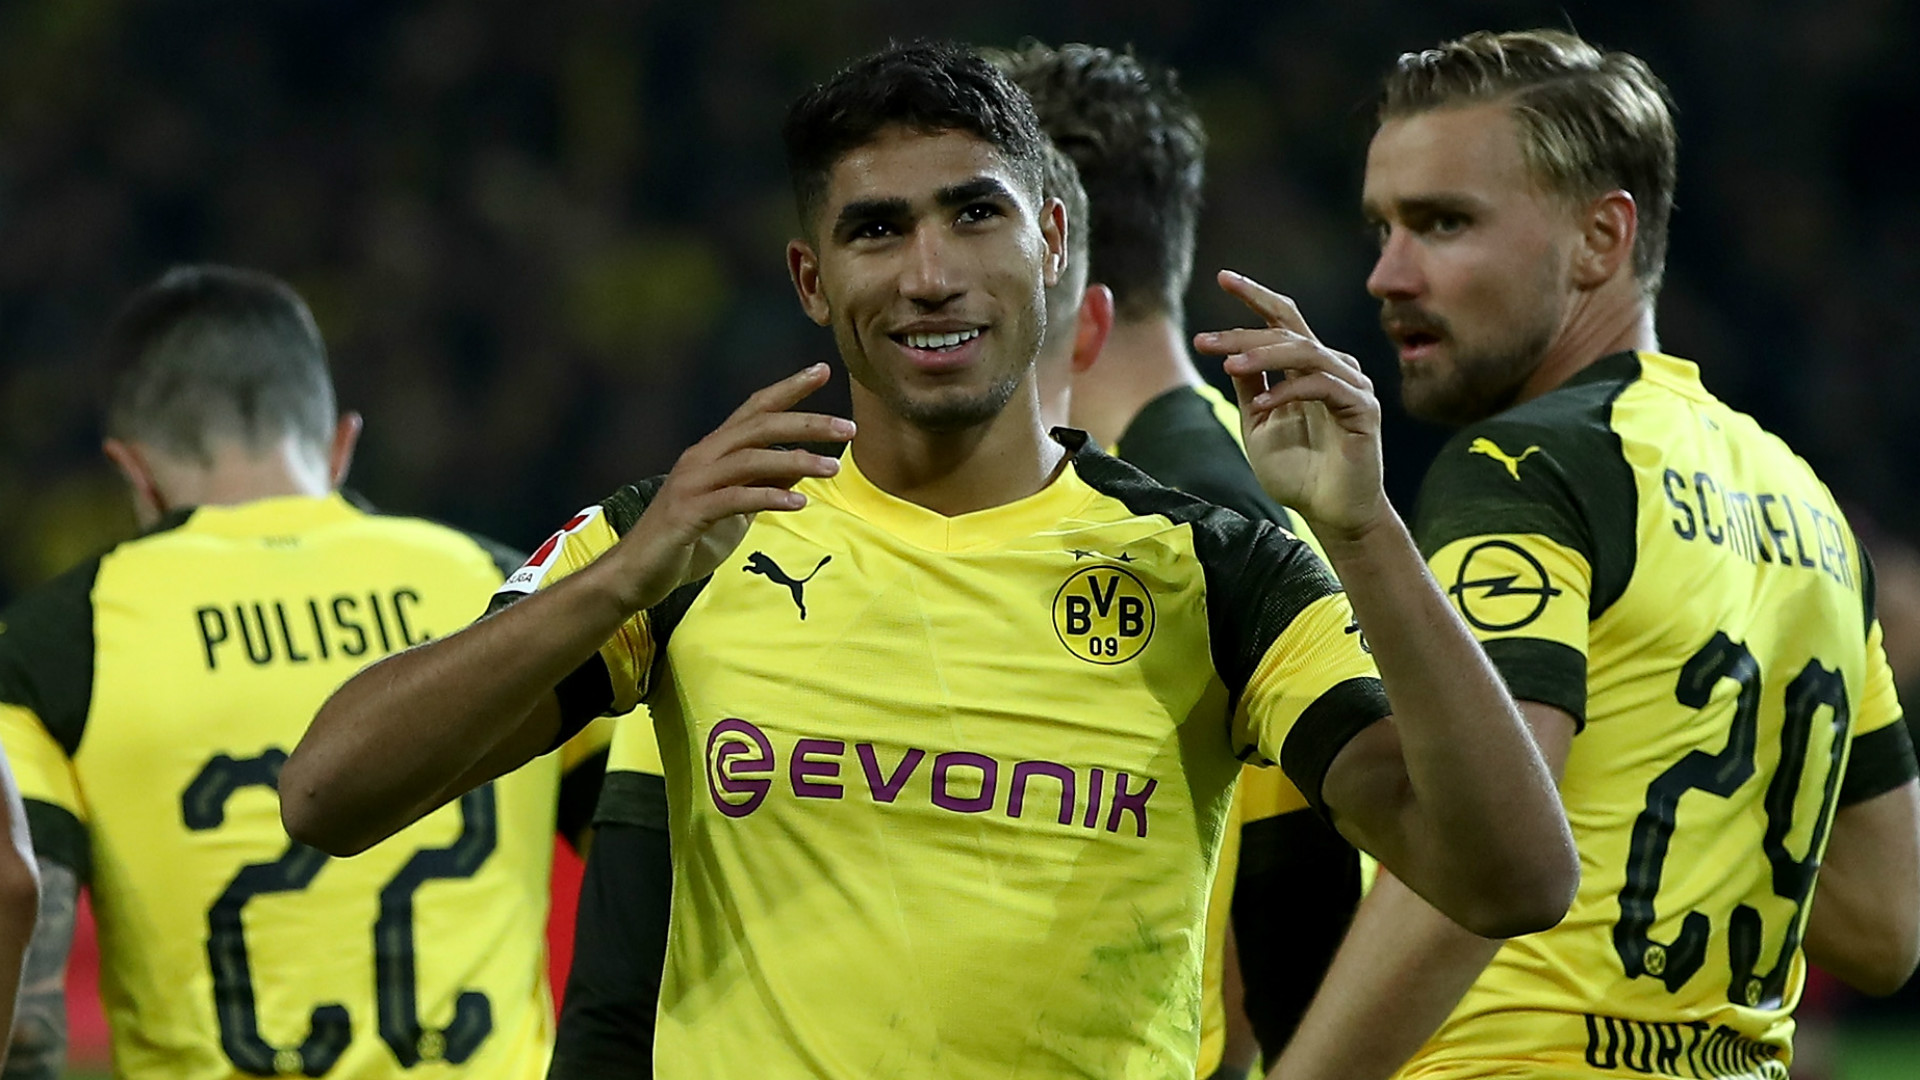 Hakimi needs another season at Borussia Dortmund – Real Madrid coach Zidane